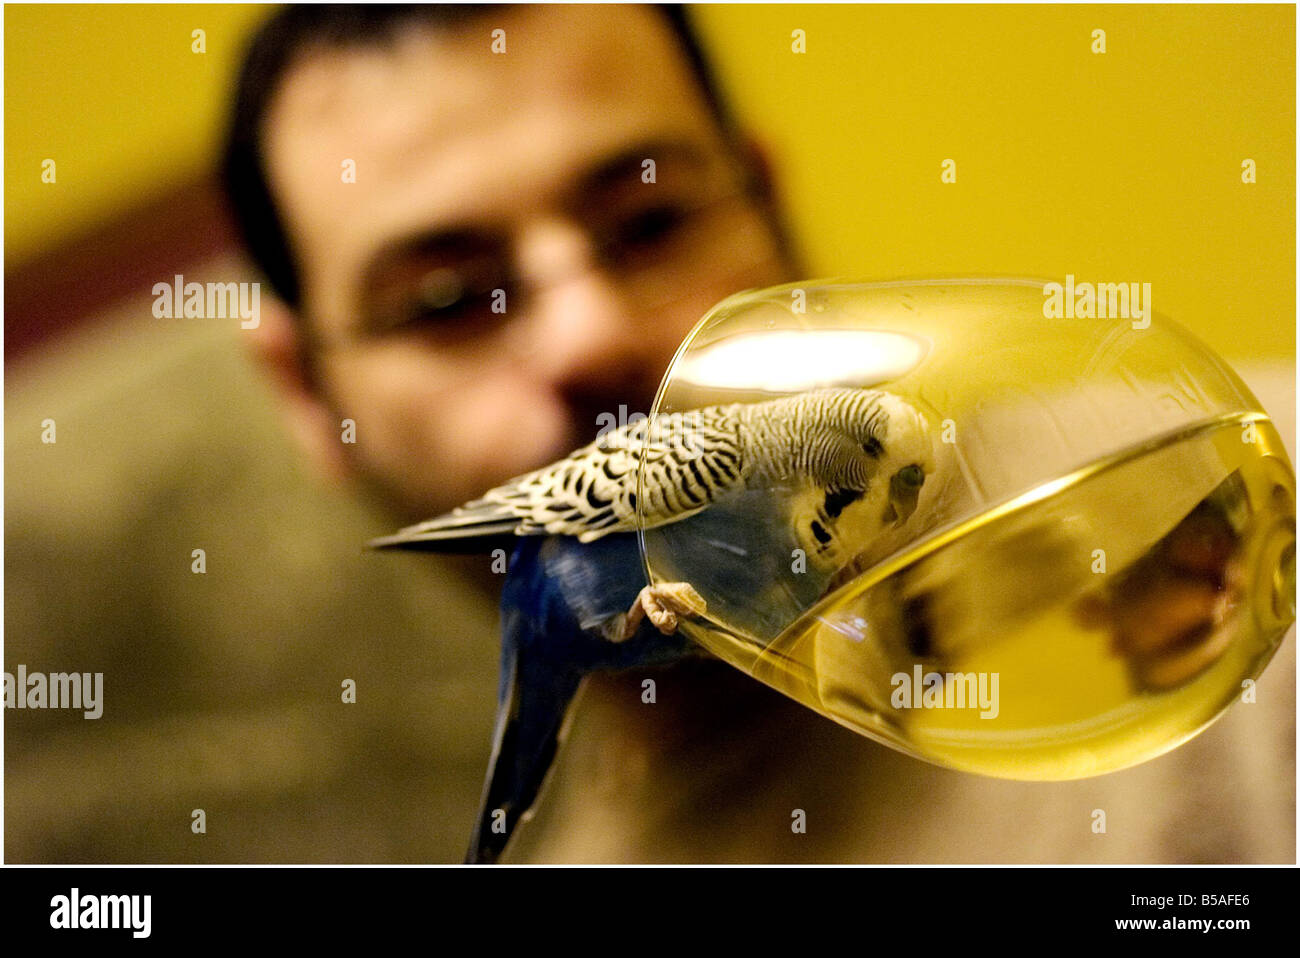 PICTURE <b>Derek Blair</b> 17 year old budgie Harry enjoys a wee tipple of wine <b>...</b> - picture-derek-blair-17-year-old-budgie-harry-enjoys-a-wee-tipple-of-B5AFE6